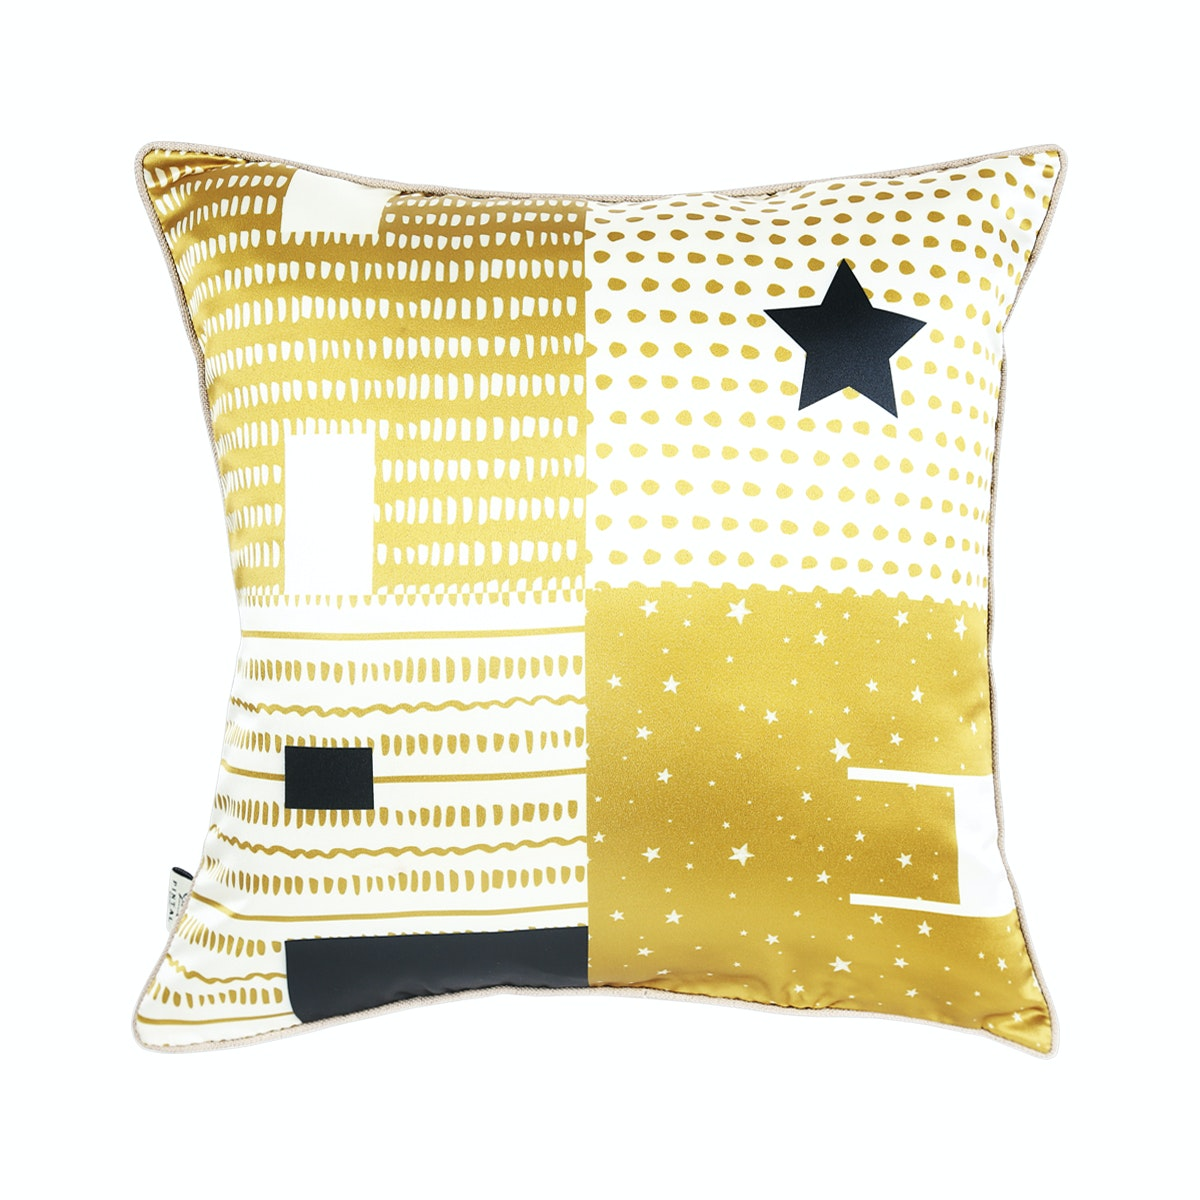 Pintal Home Sarung Cushion Hope Black Gold 40x40cm